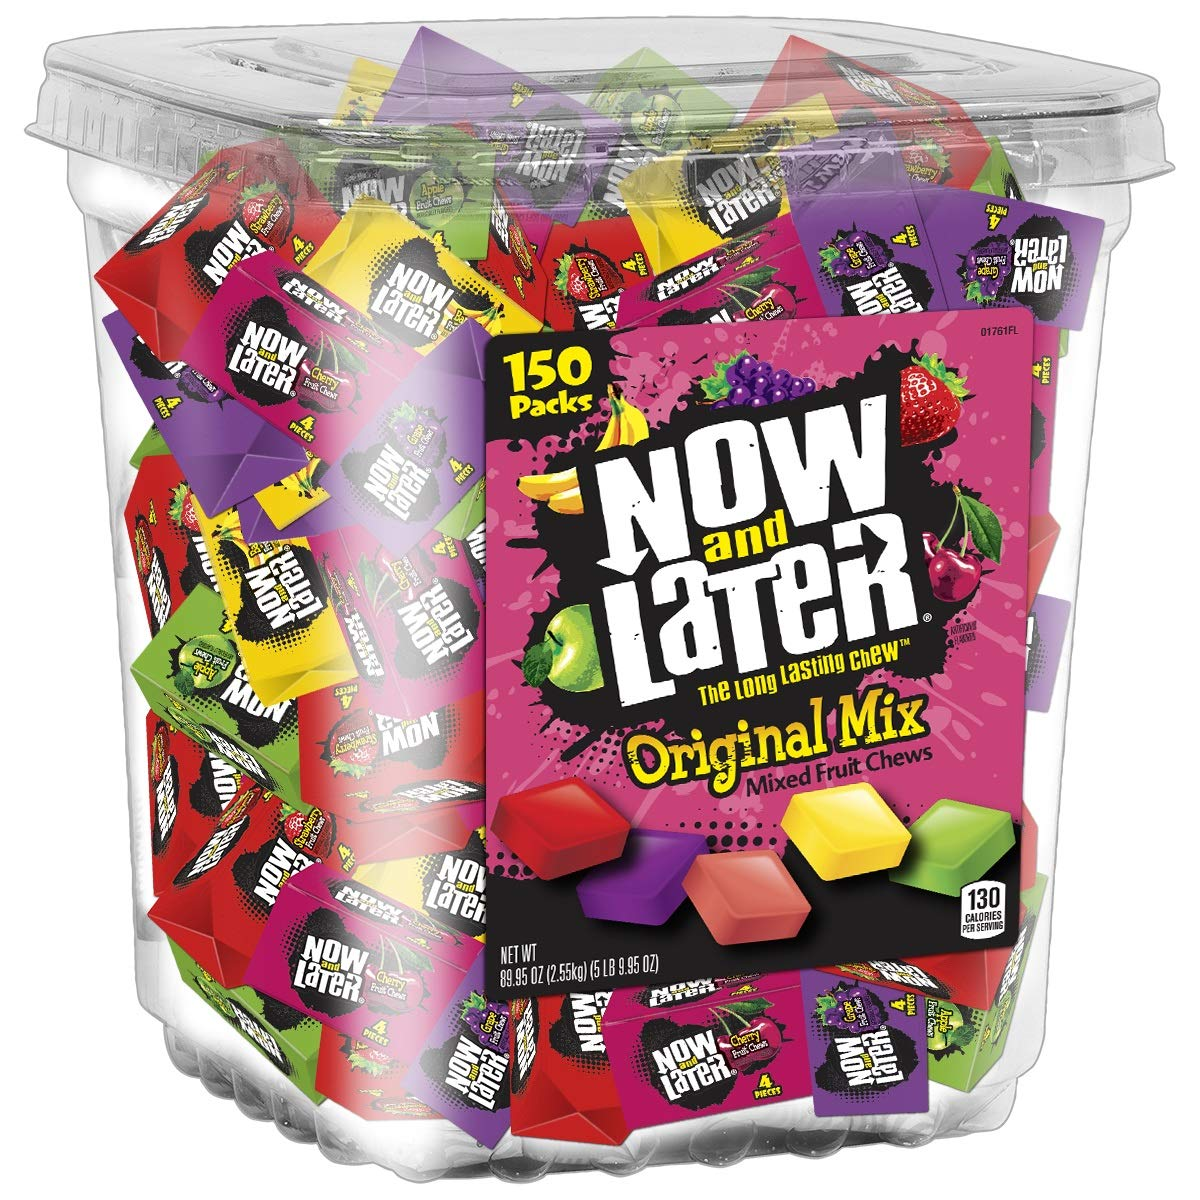 Now & Later Original Taffy Chews Candy, Assorted, 150 Count Chews, 90 Ounce Jar (Pack of 6) by Now and Later (Image #1)